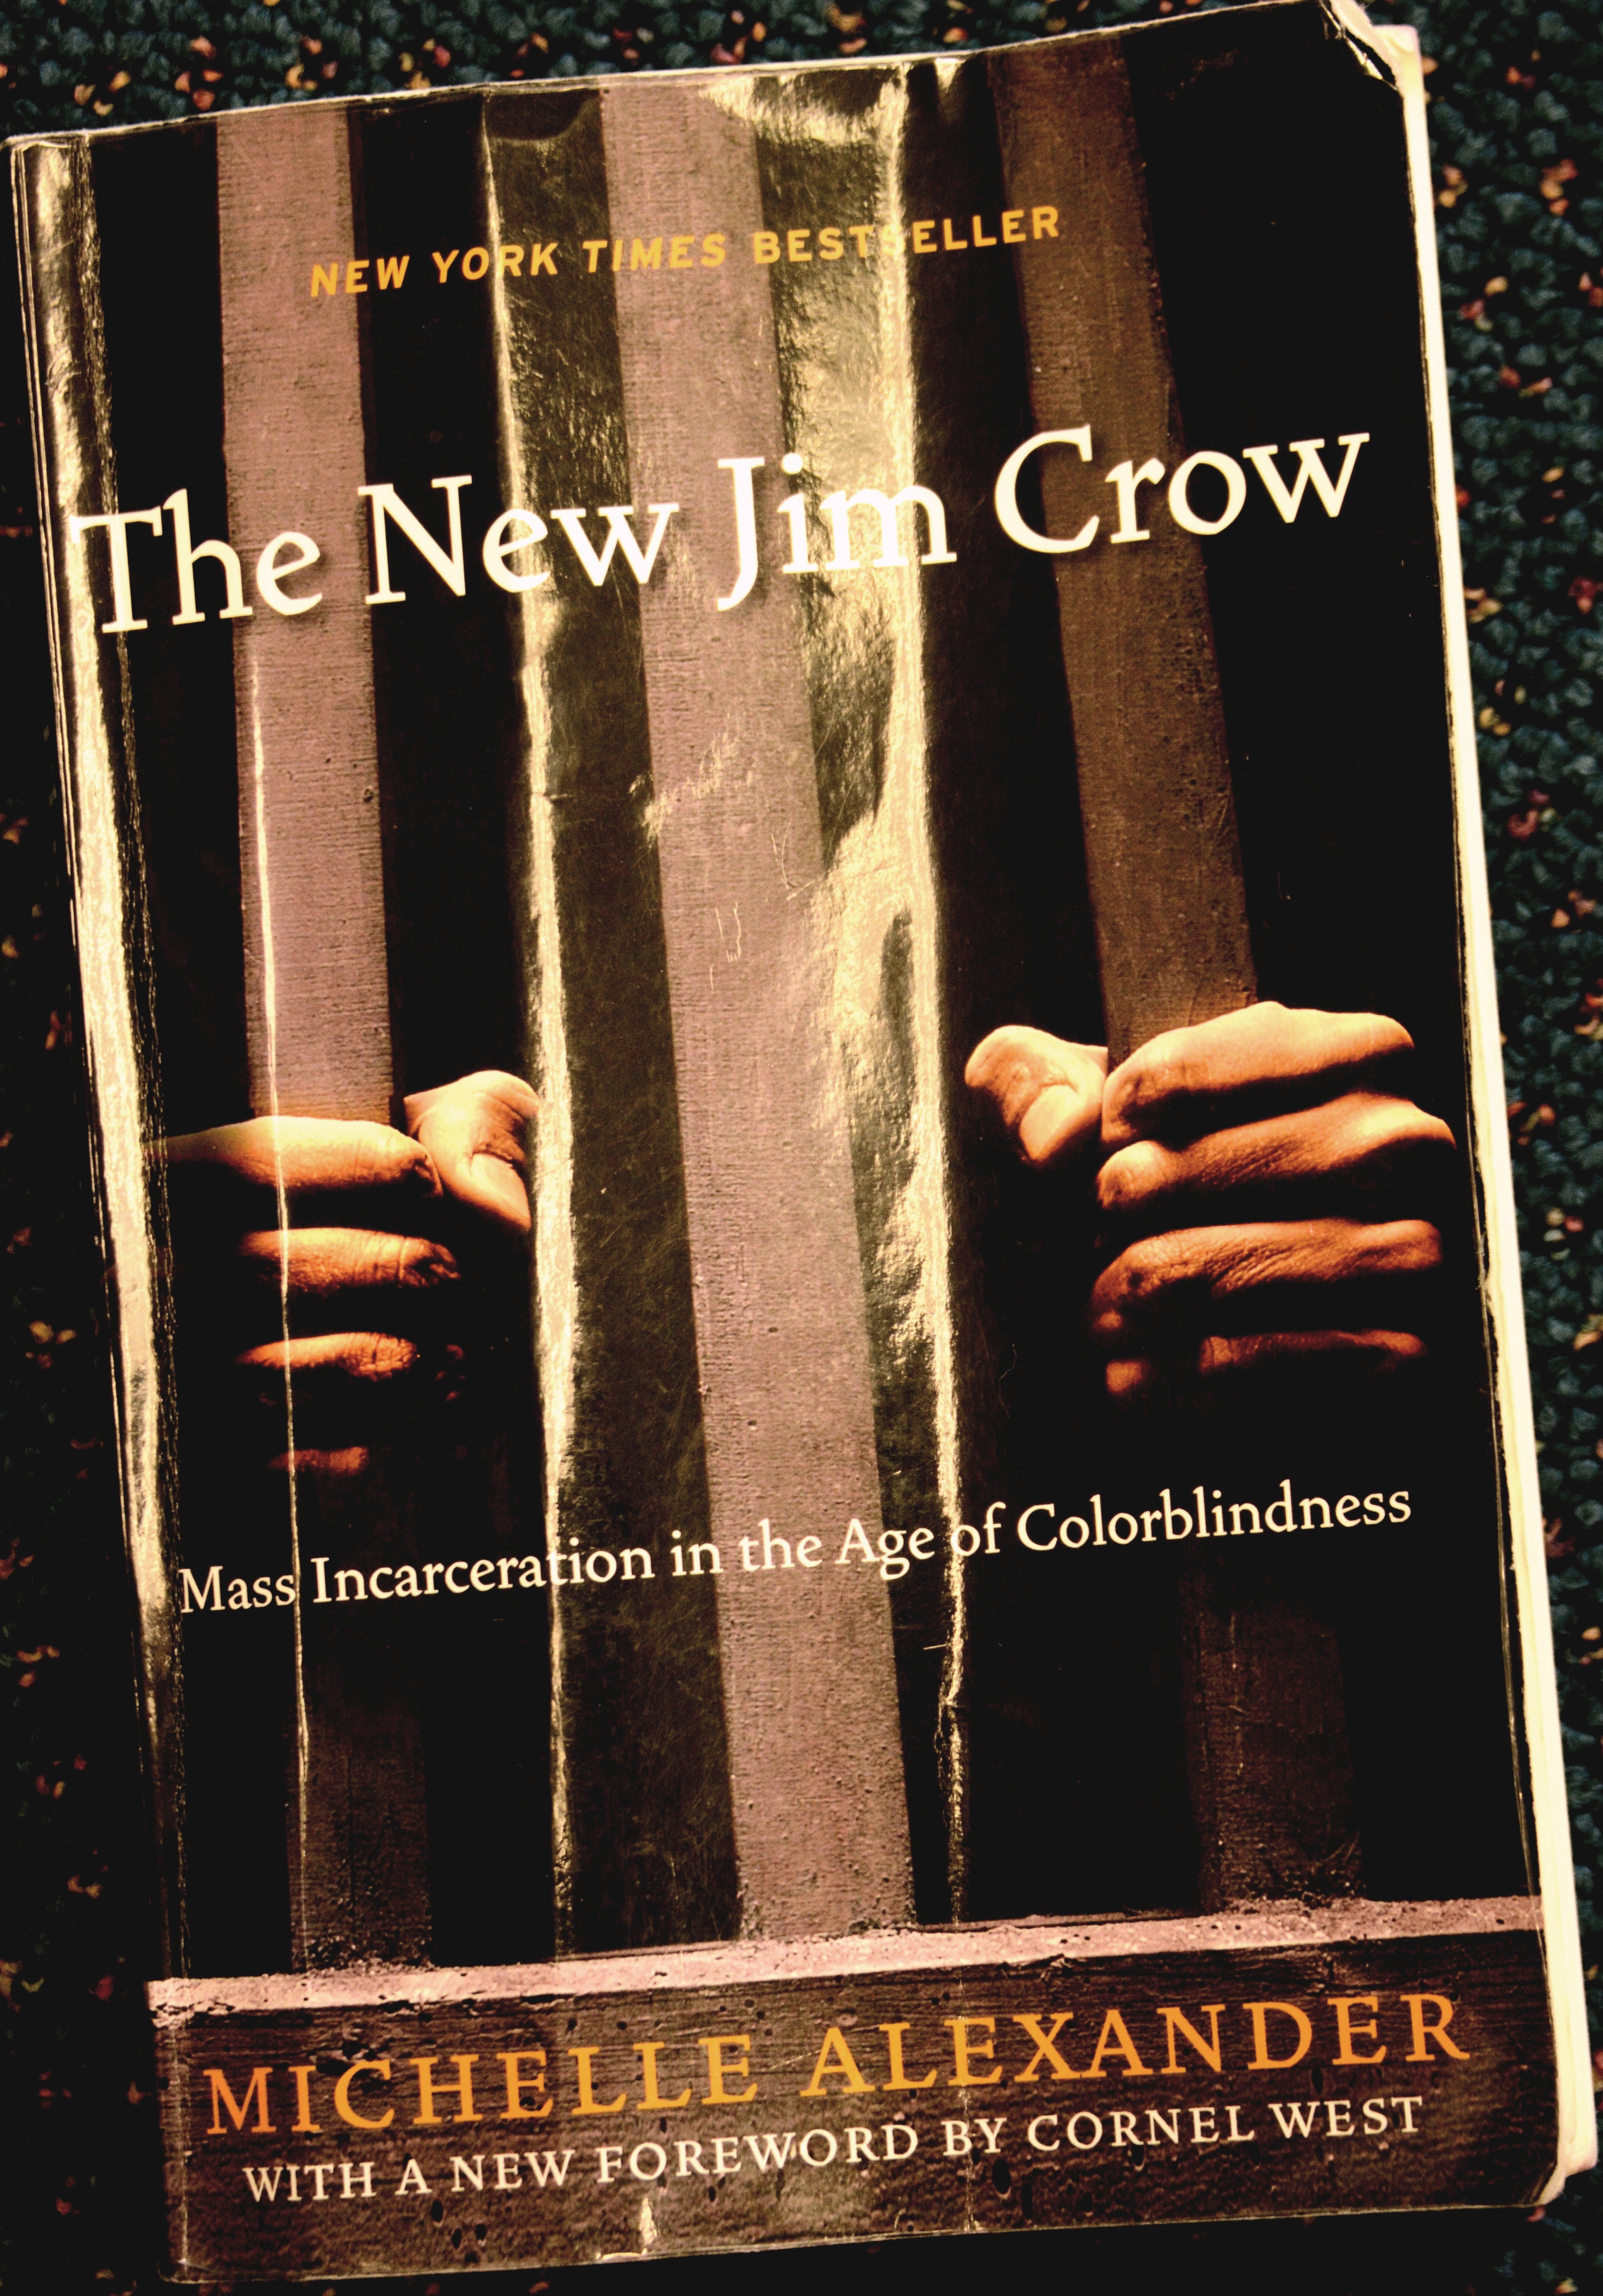 the strange career of jim crow book review The strange career of jim crow the strangest and most notable fact about jim crow's career was that jim crow was not a person at all in fact, crow were racial and segregation state and local laws that were enforced after the reconstruction period that withheld until 1965.